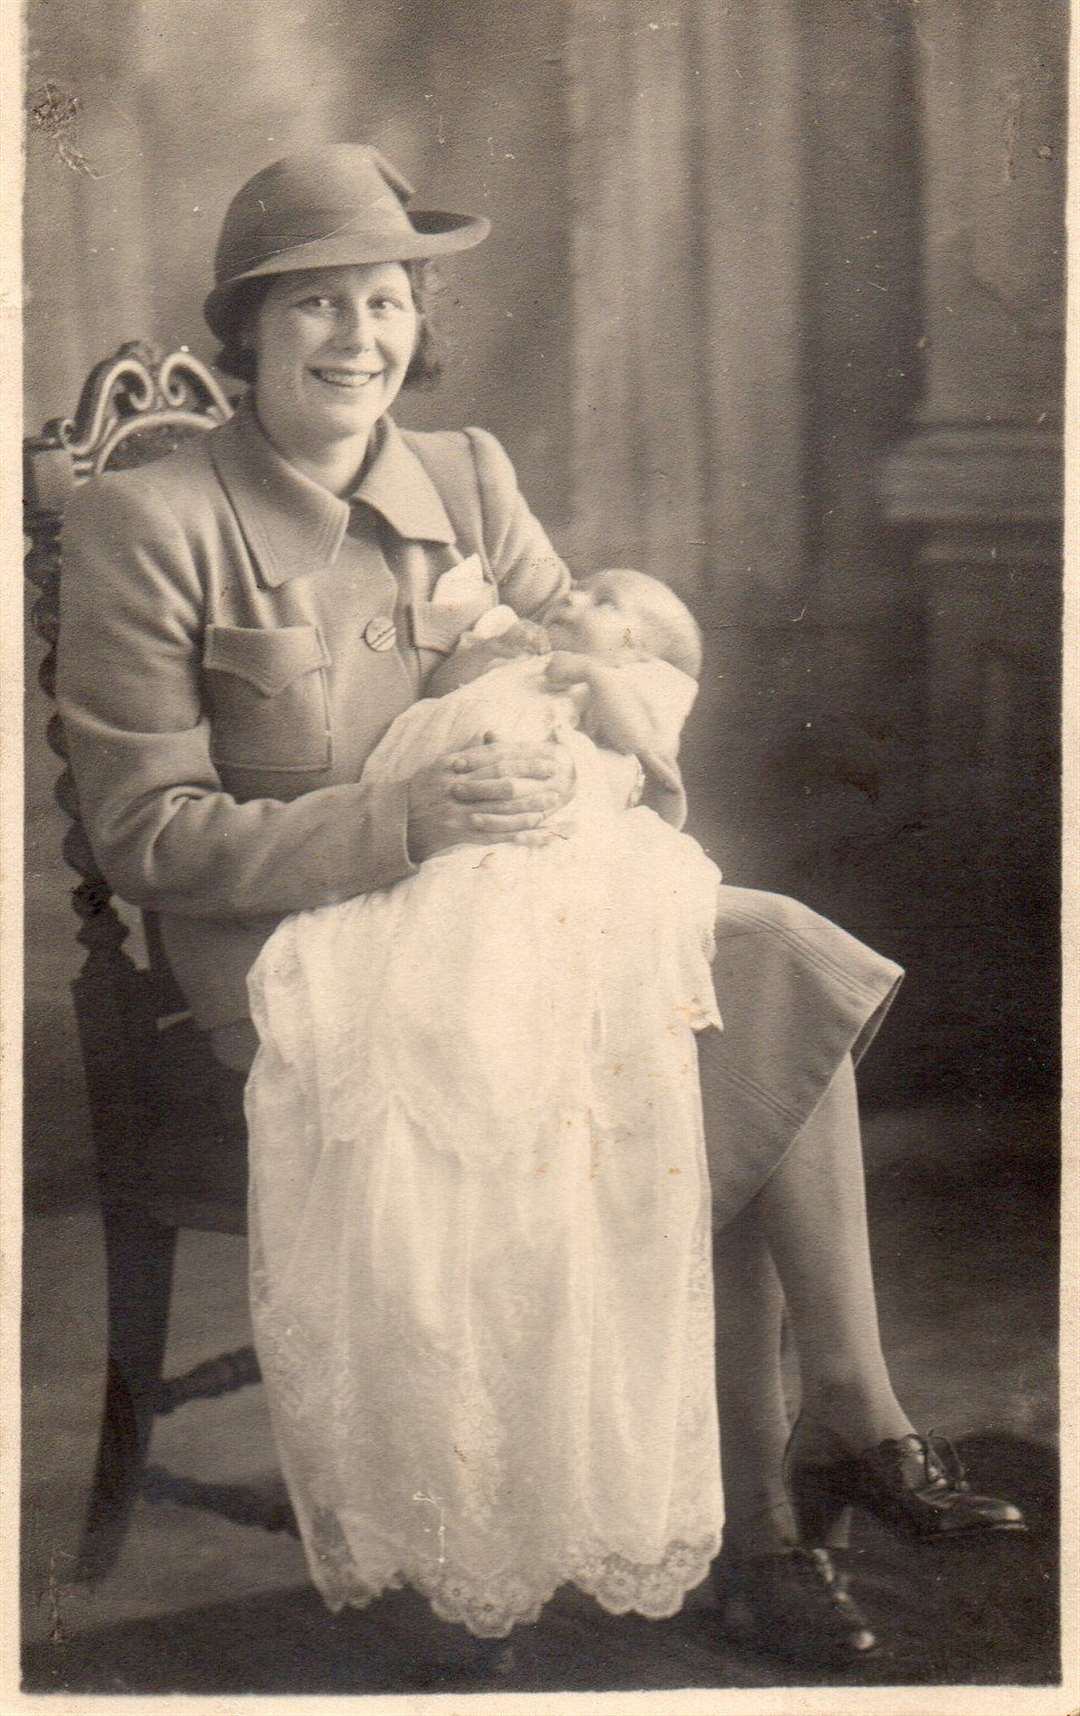 Ted Honey as a baby being held by his mother Violet